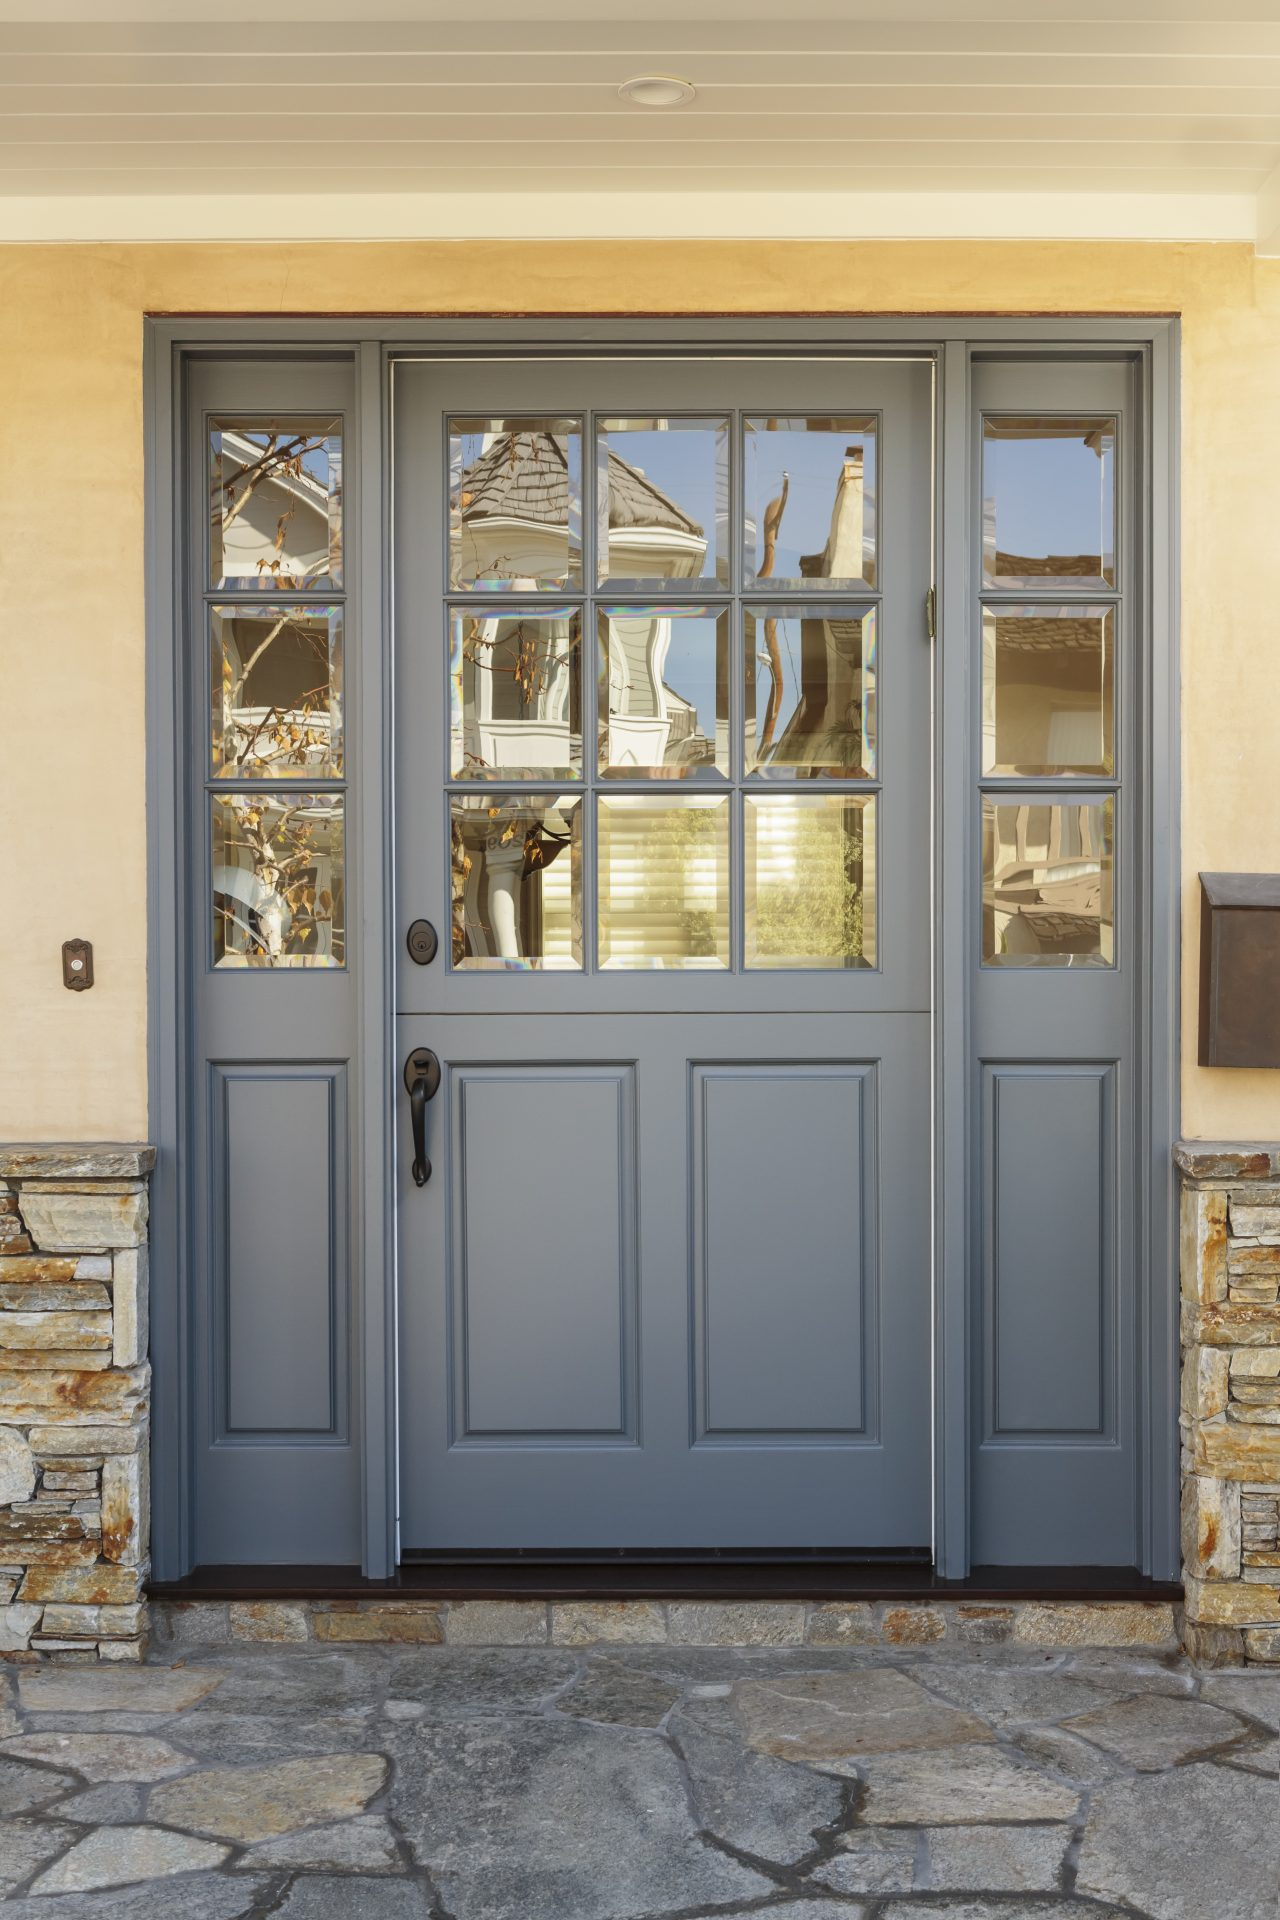 Colour trends for 2017 grey oakville windows doors colour trends for 2017 grey by oakville windows and doors rubansaba